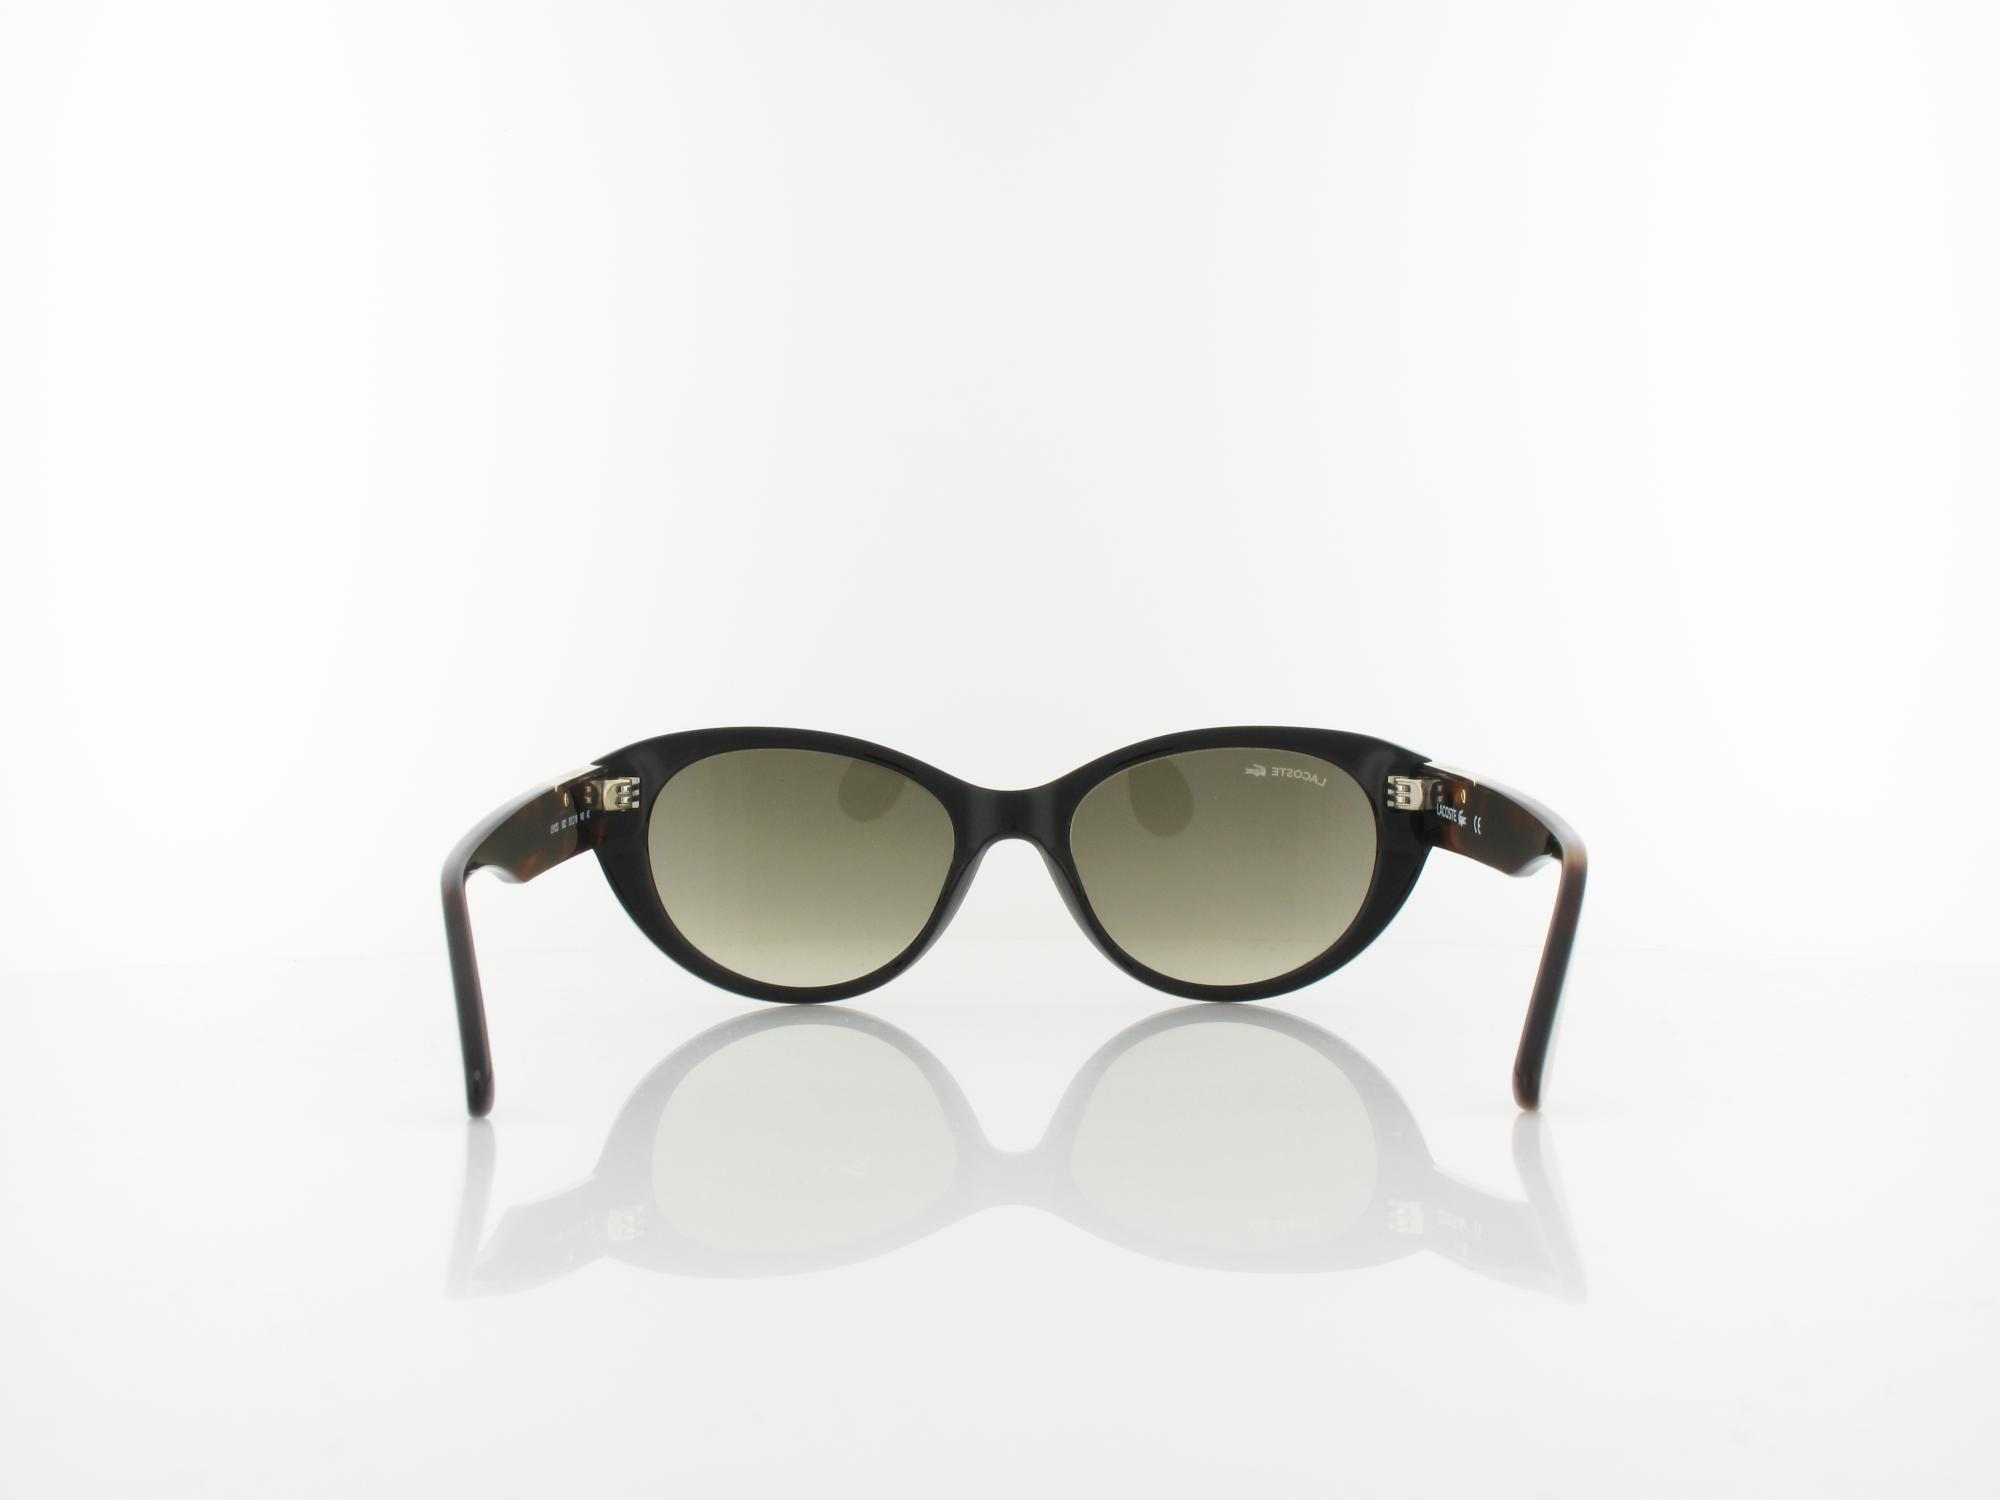 Lacoste | L912S 002 53 | onyx / brown gradient